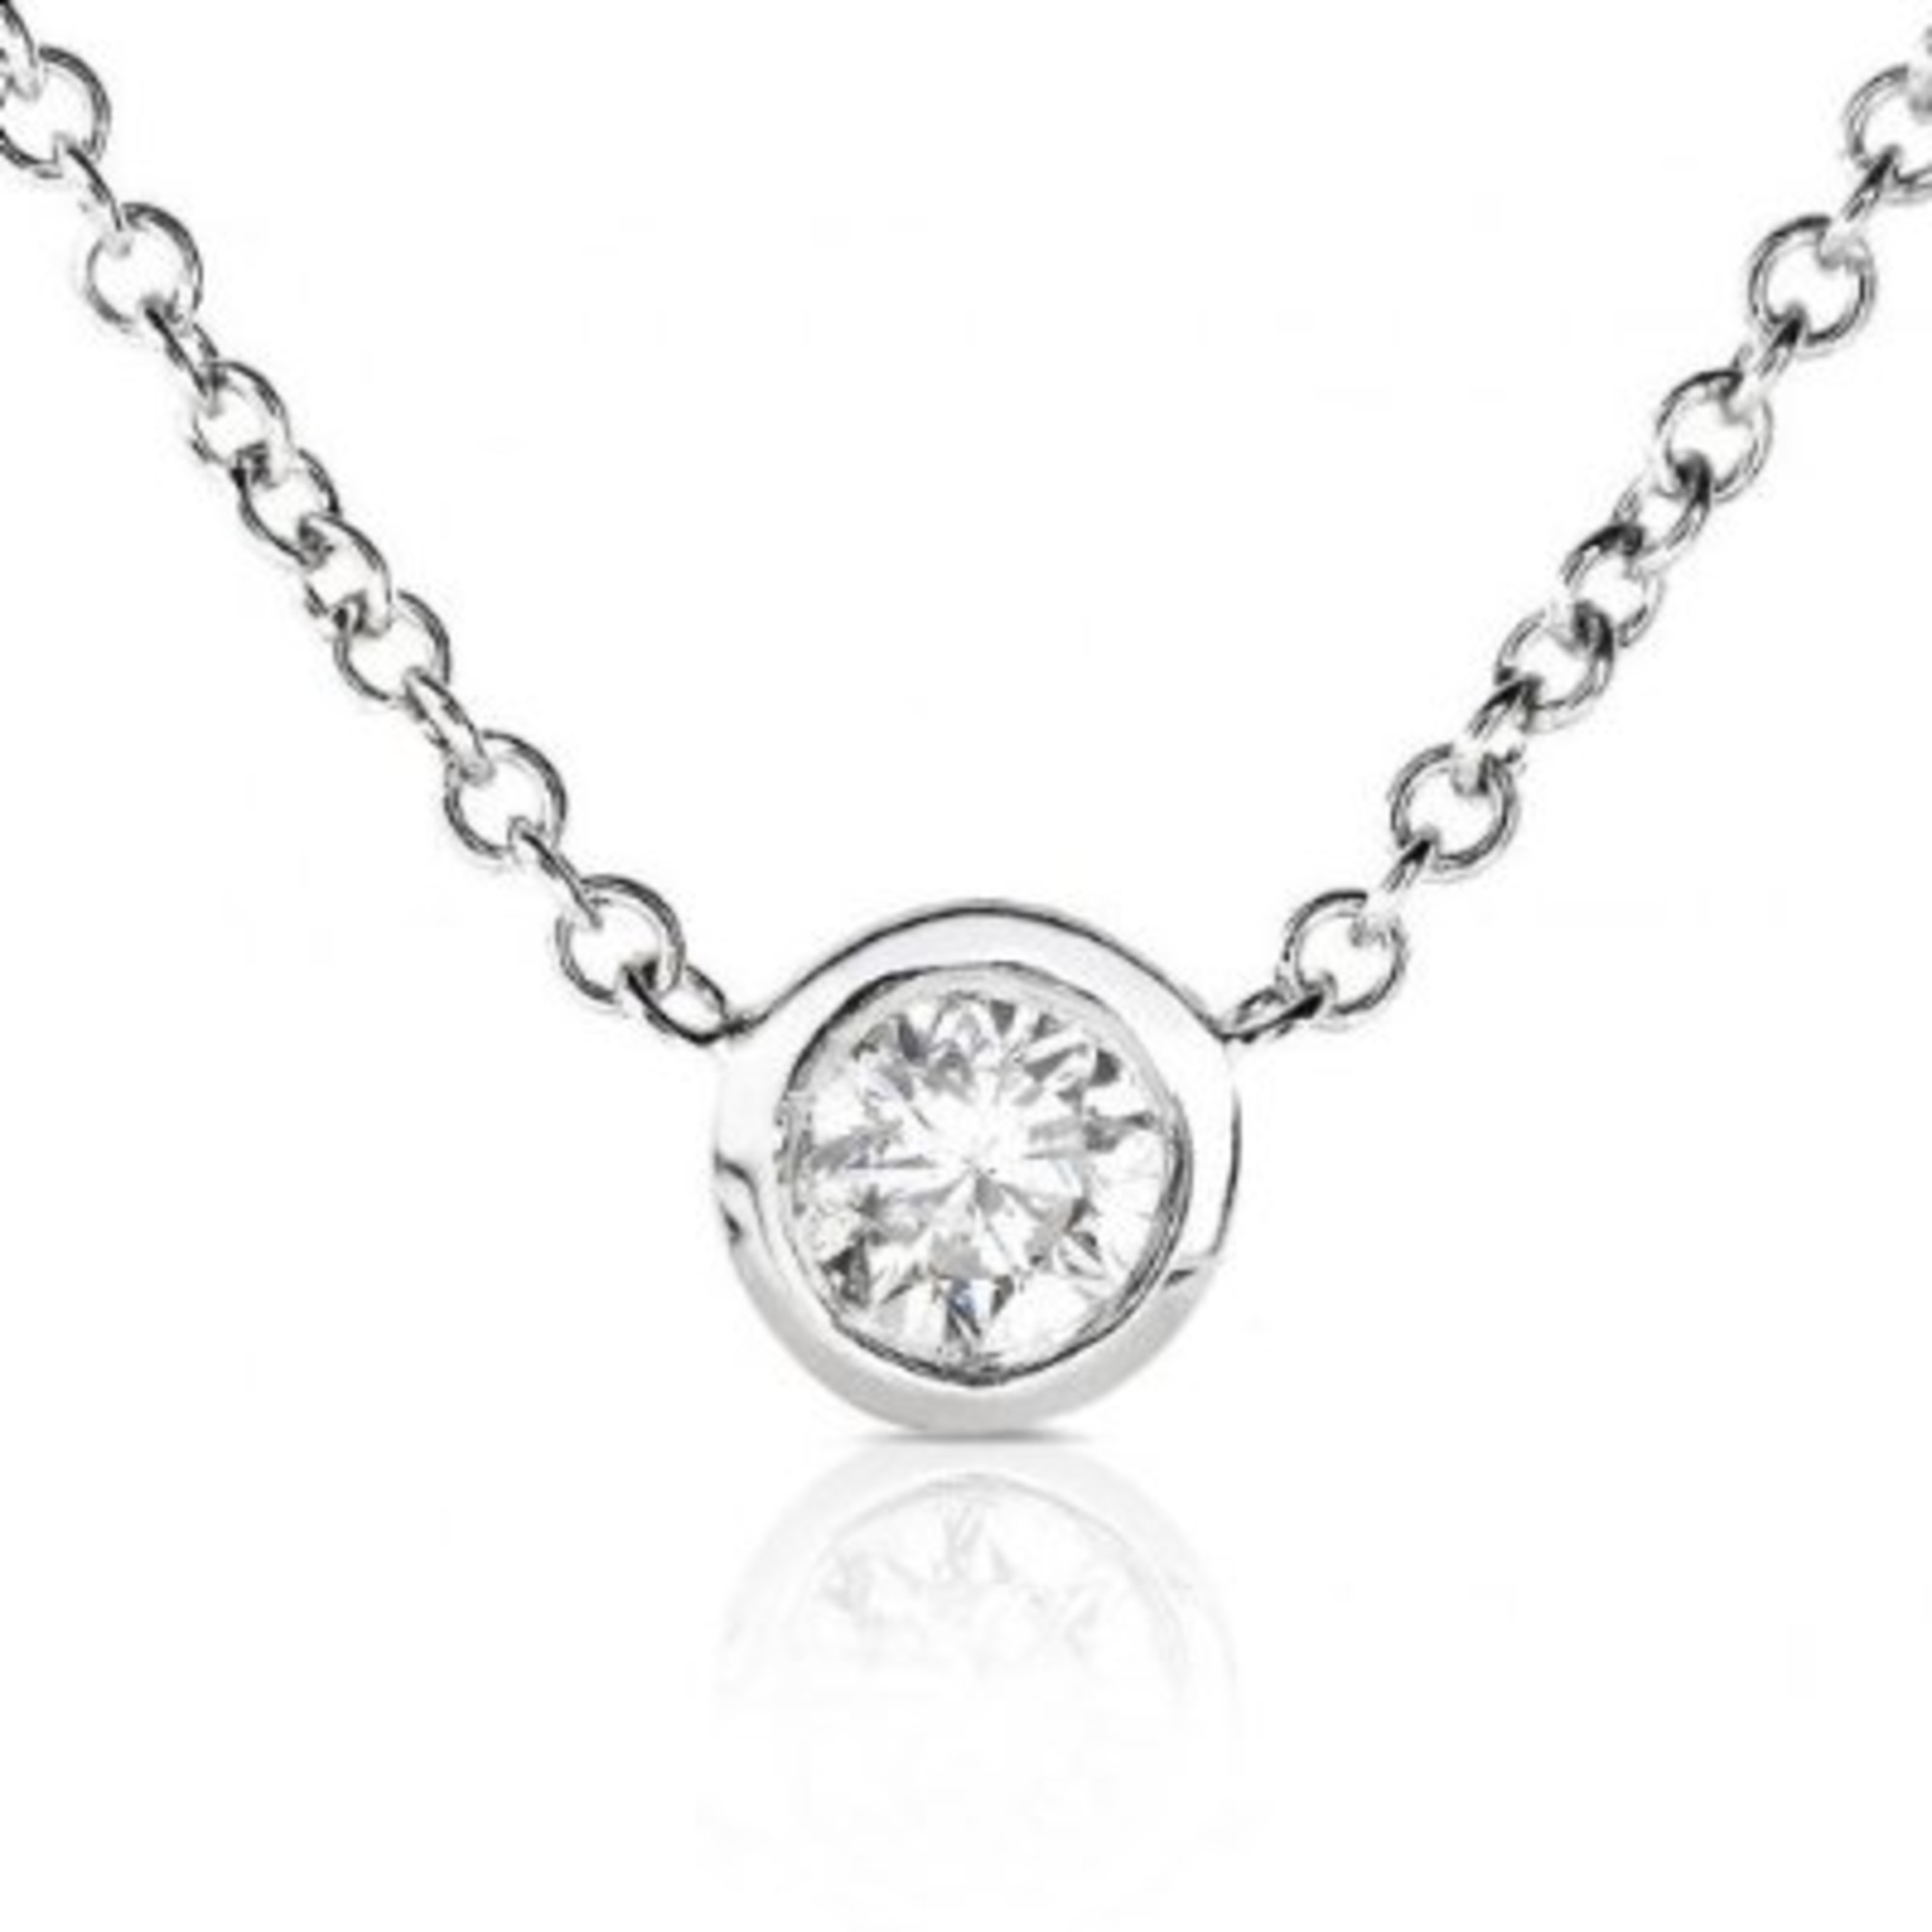 Diamond Solitaire 1 6 Carat Bezel Necklace in Platinum by